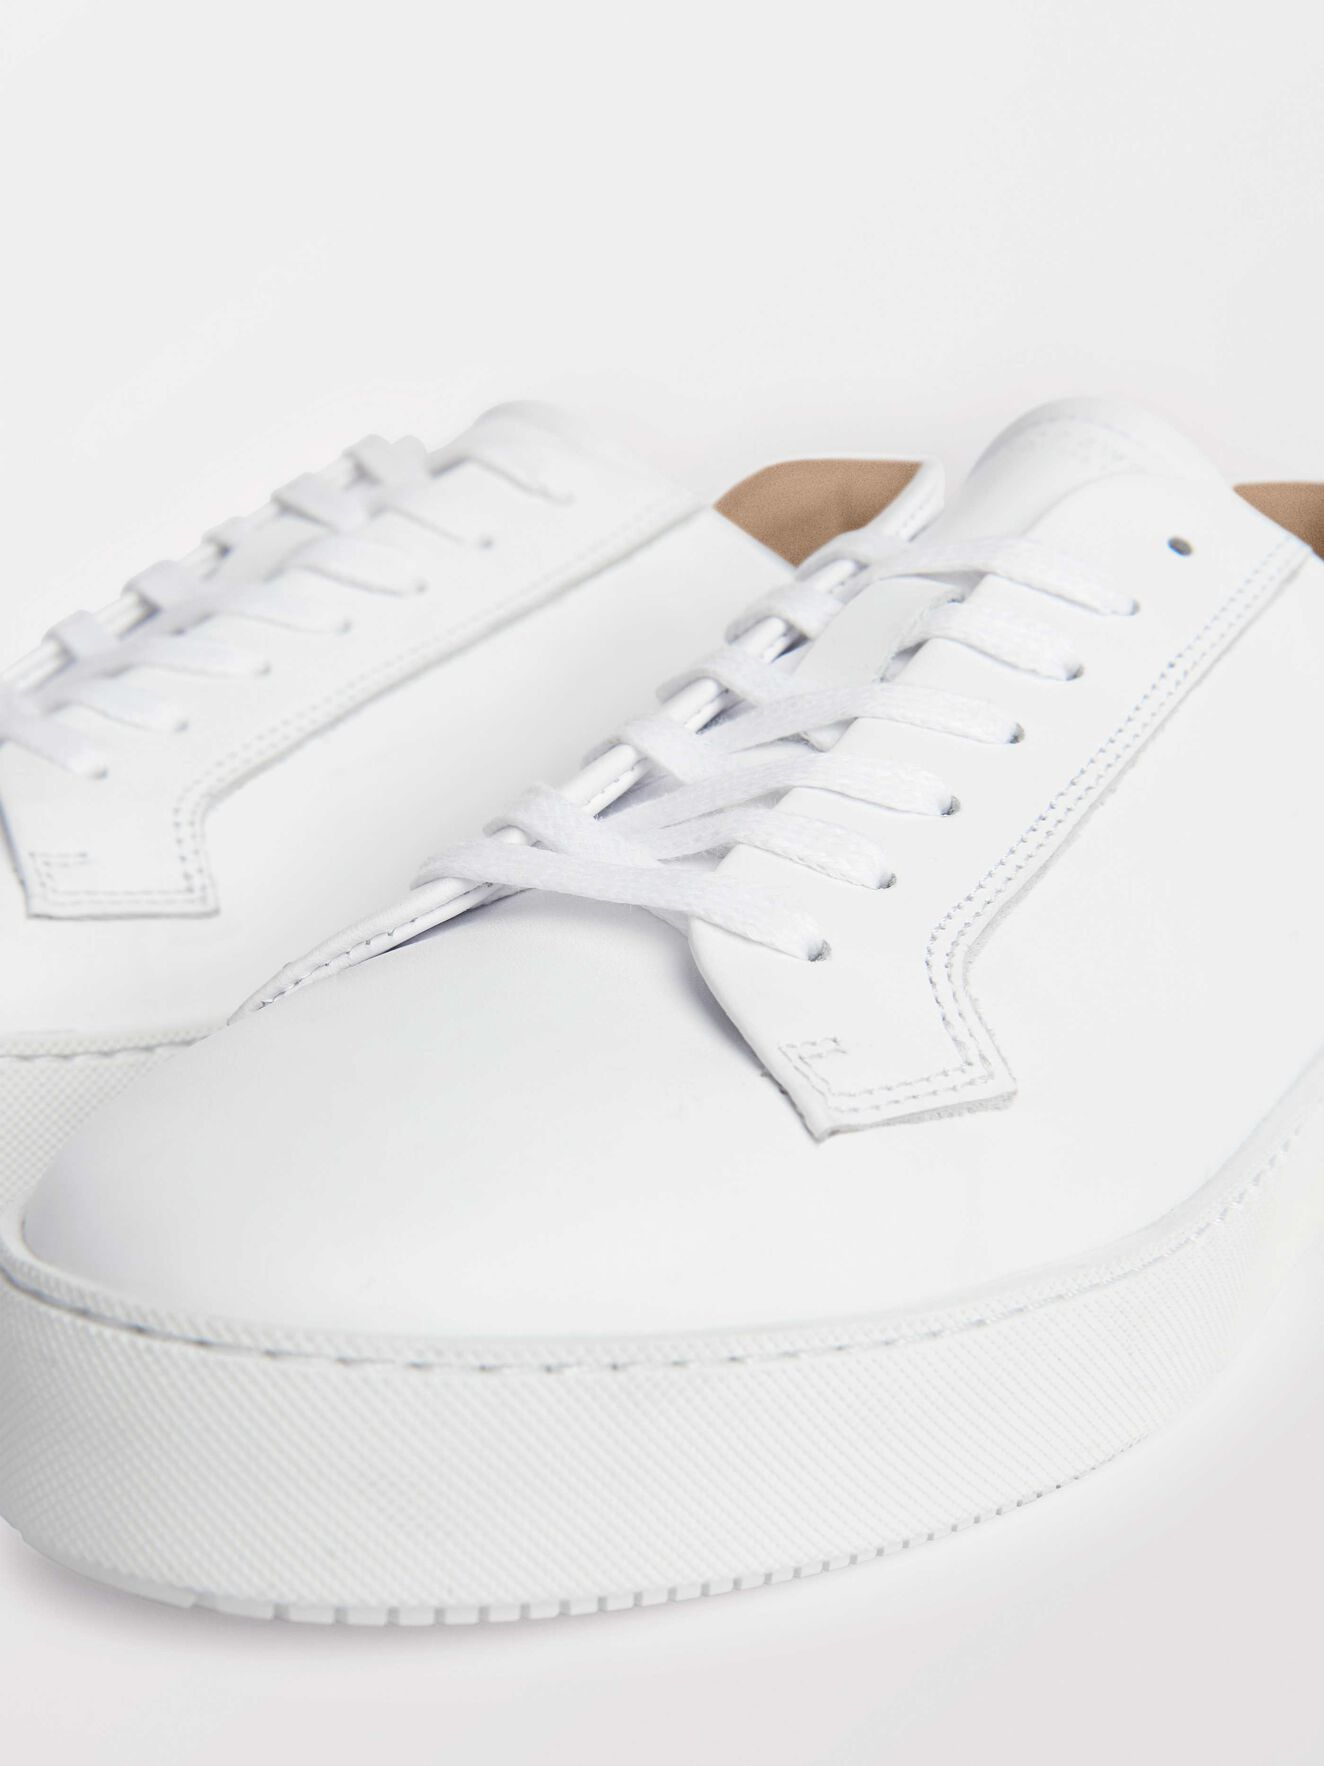 Salasi L Sneakers  in White from Tiger of Sweden